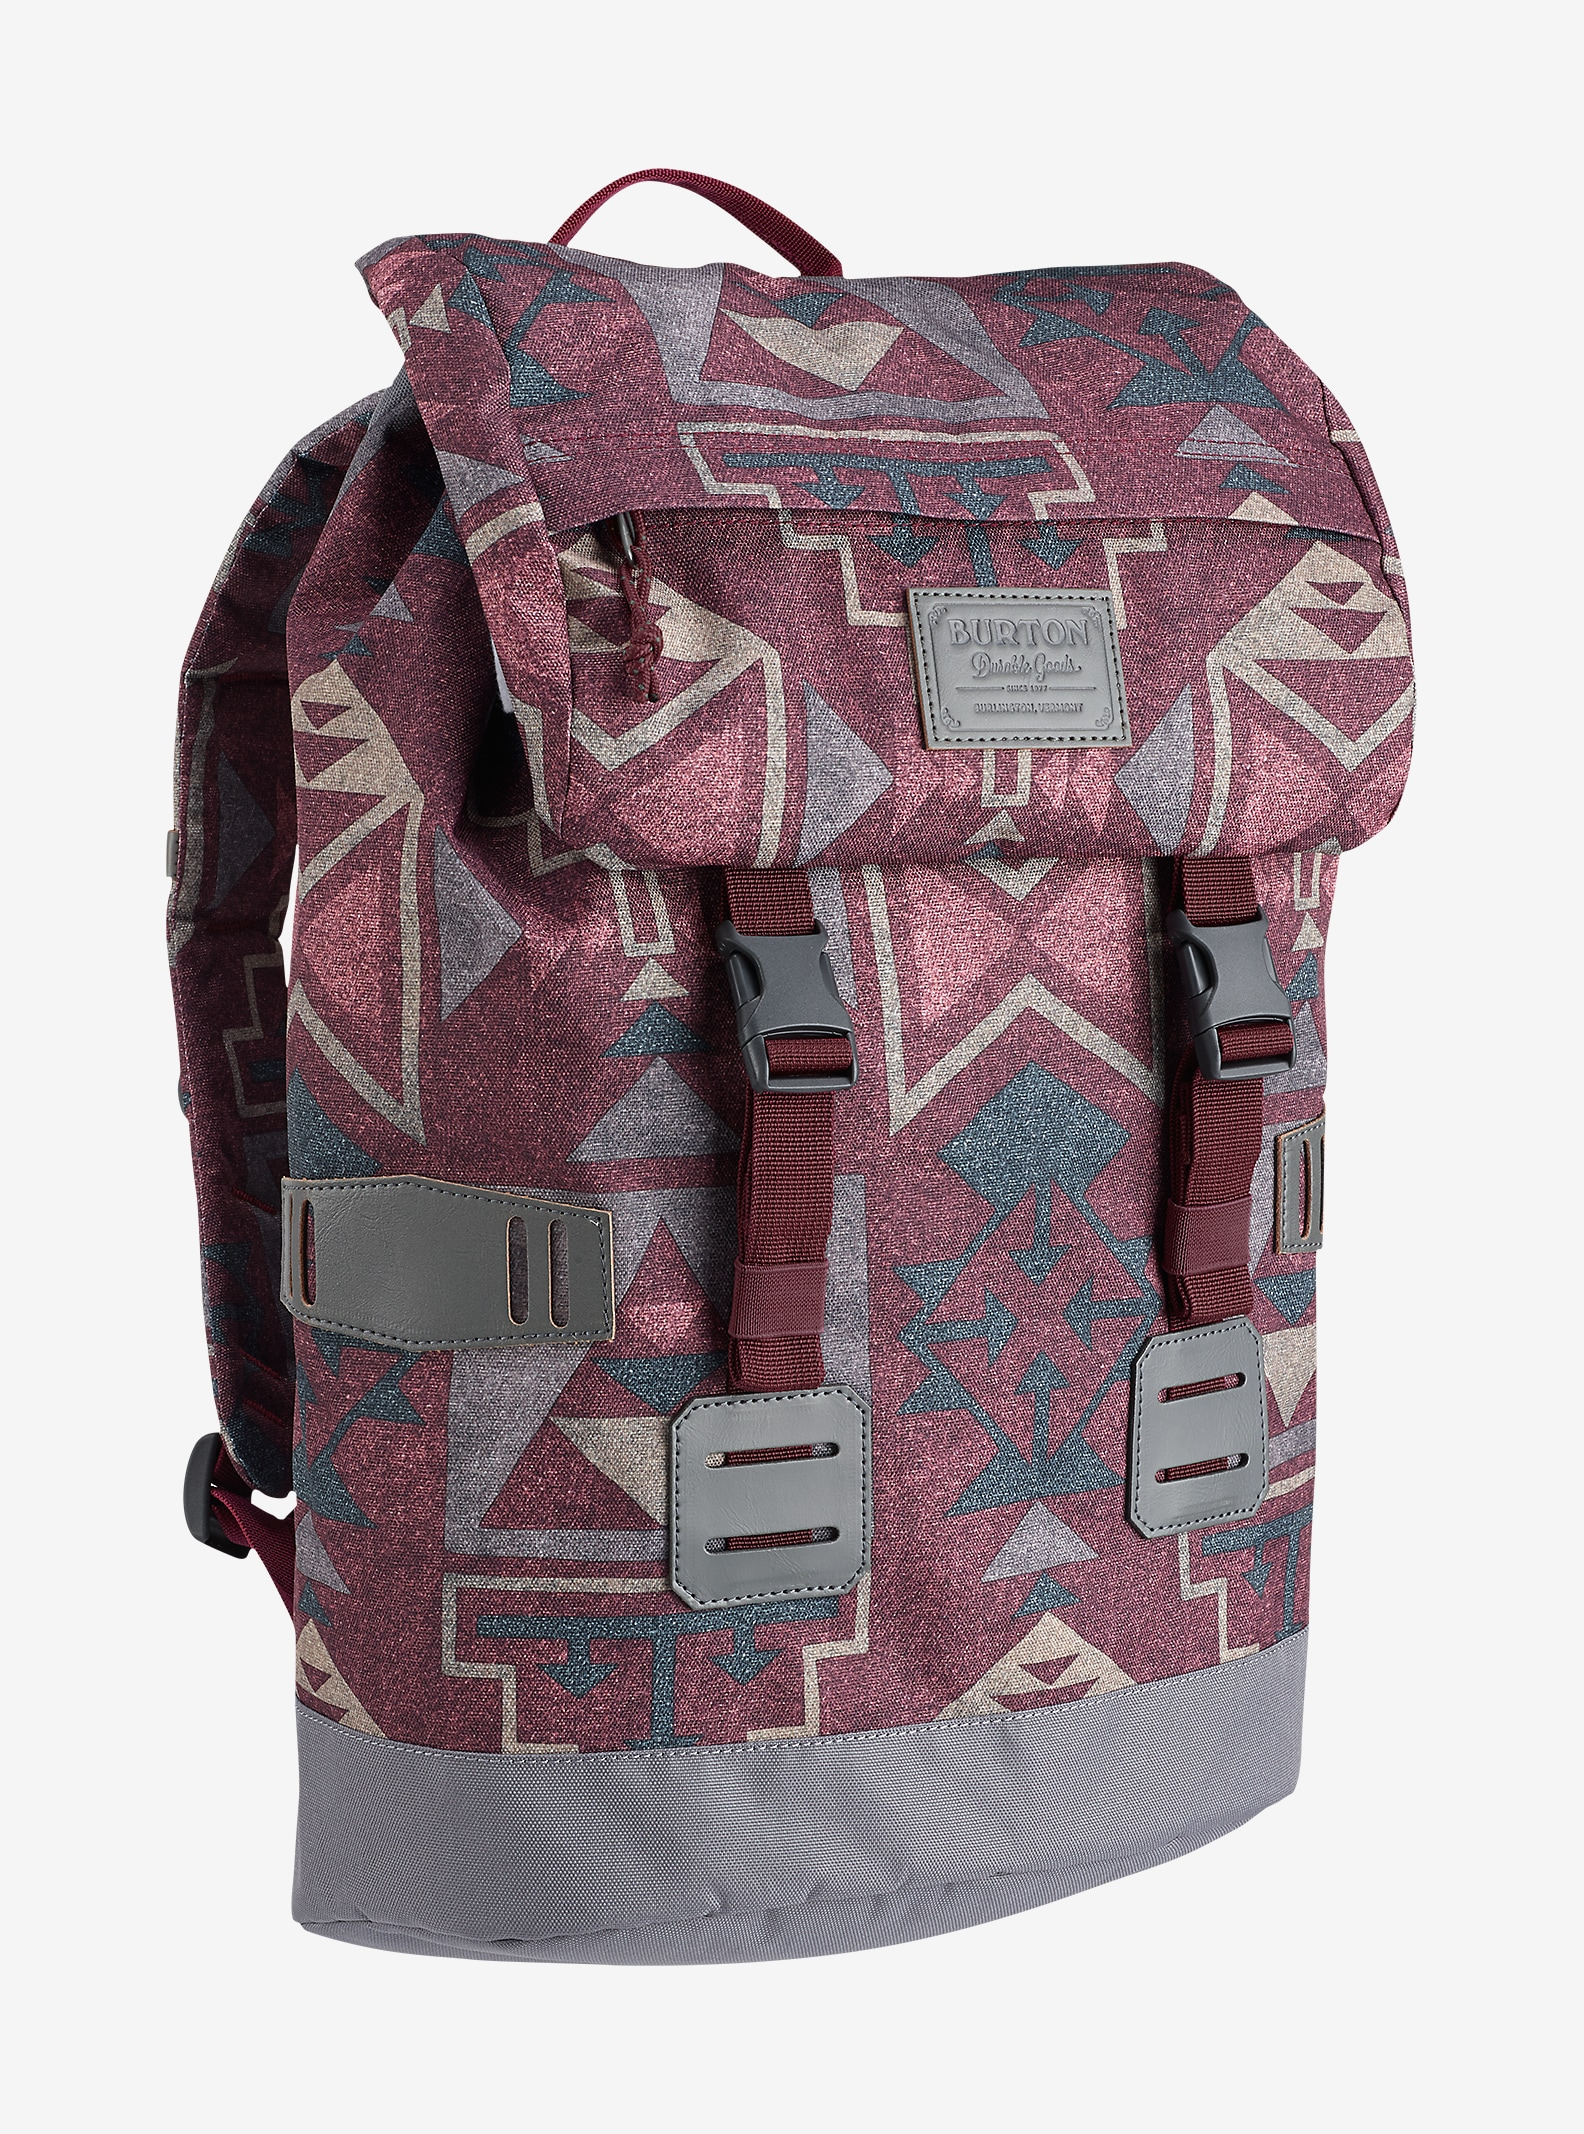 Burton Tinder Backpack shown in Canyon Print